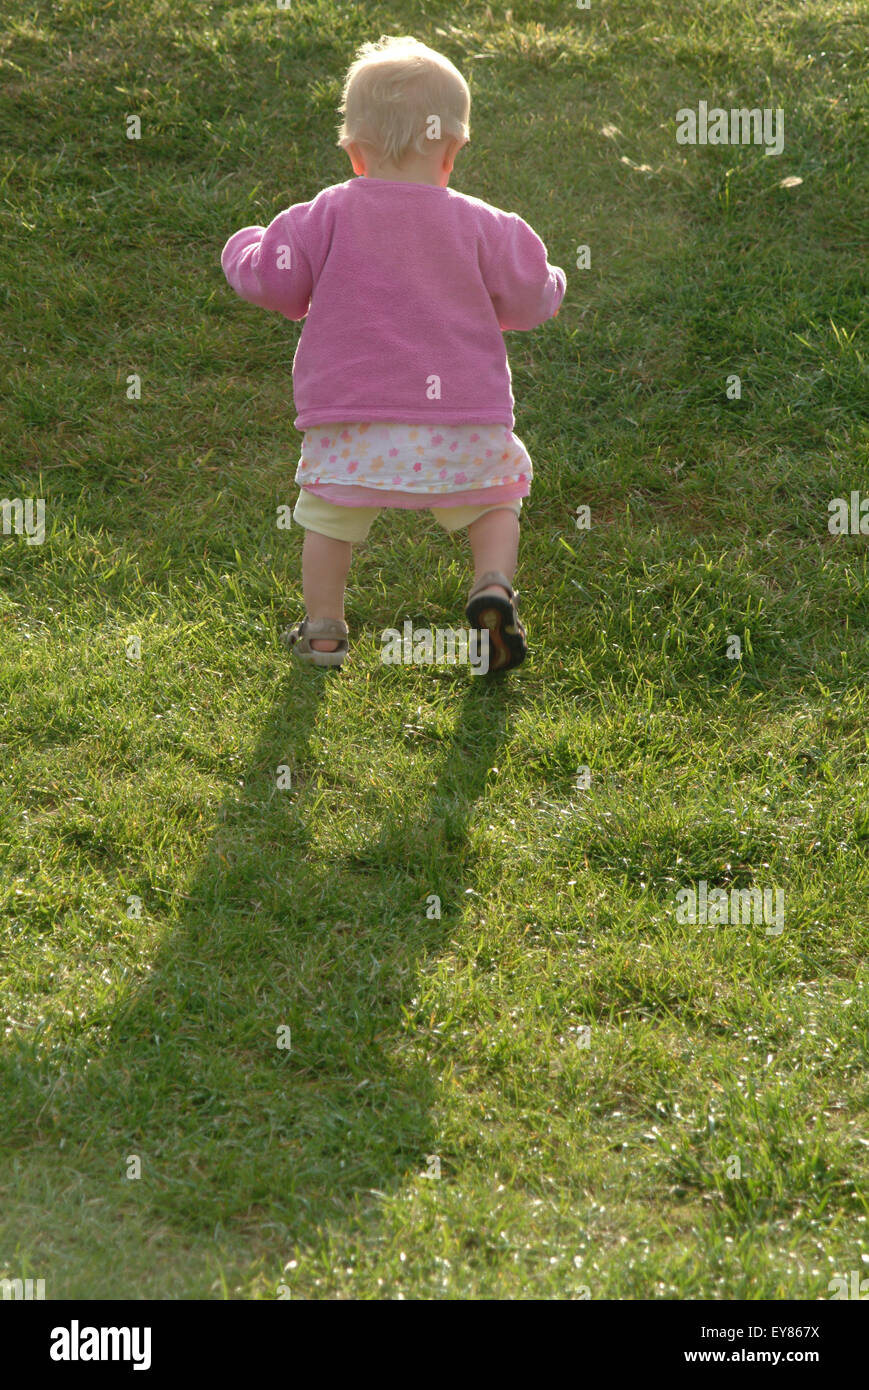 Rear view of baby toddling, learning to walk - Stock Image